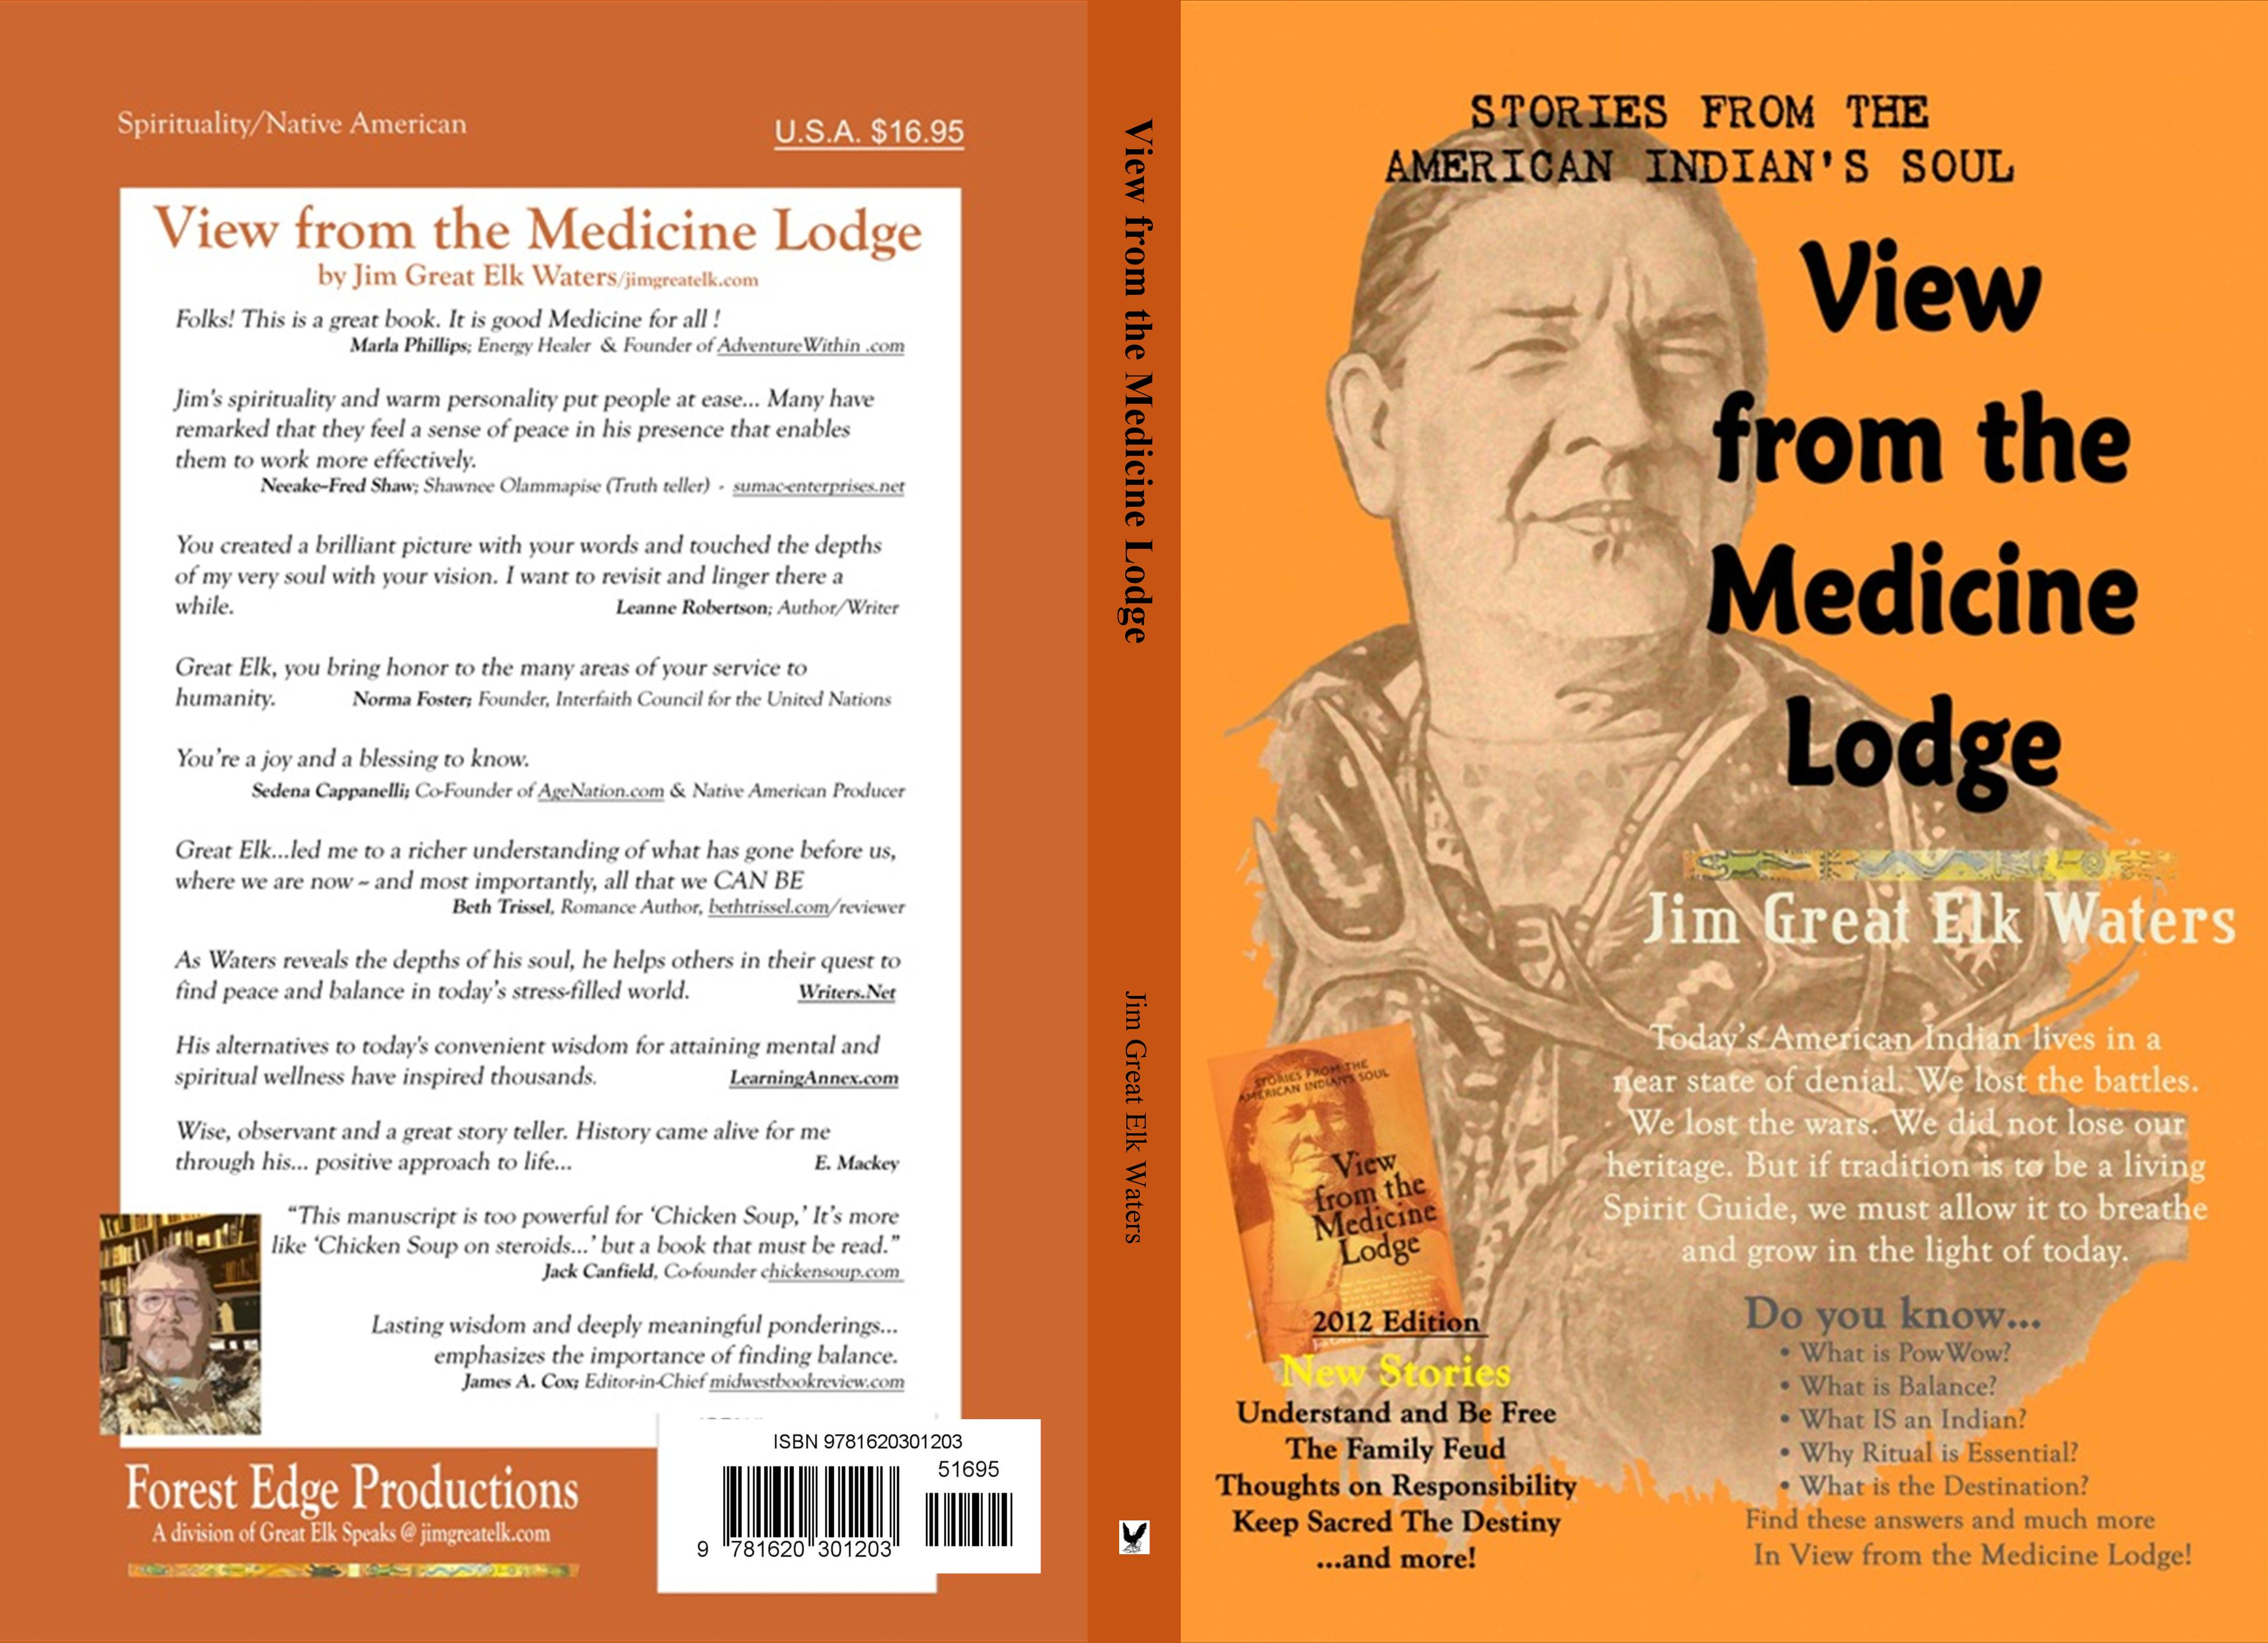 View from the Medicine Lodge cover image